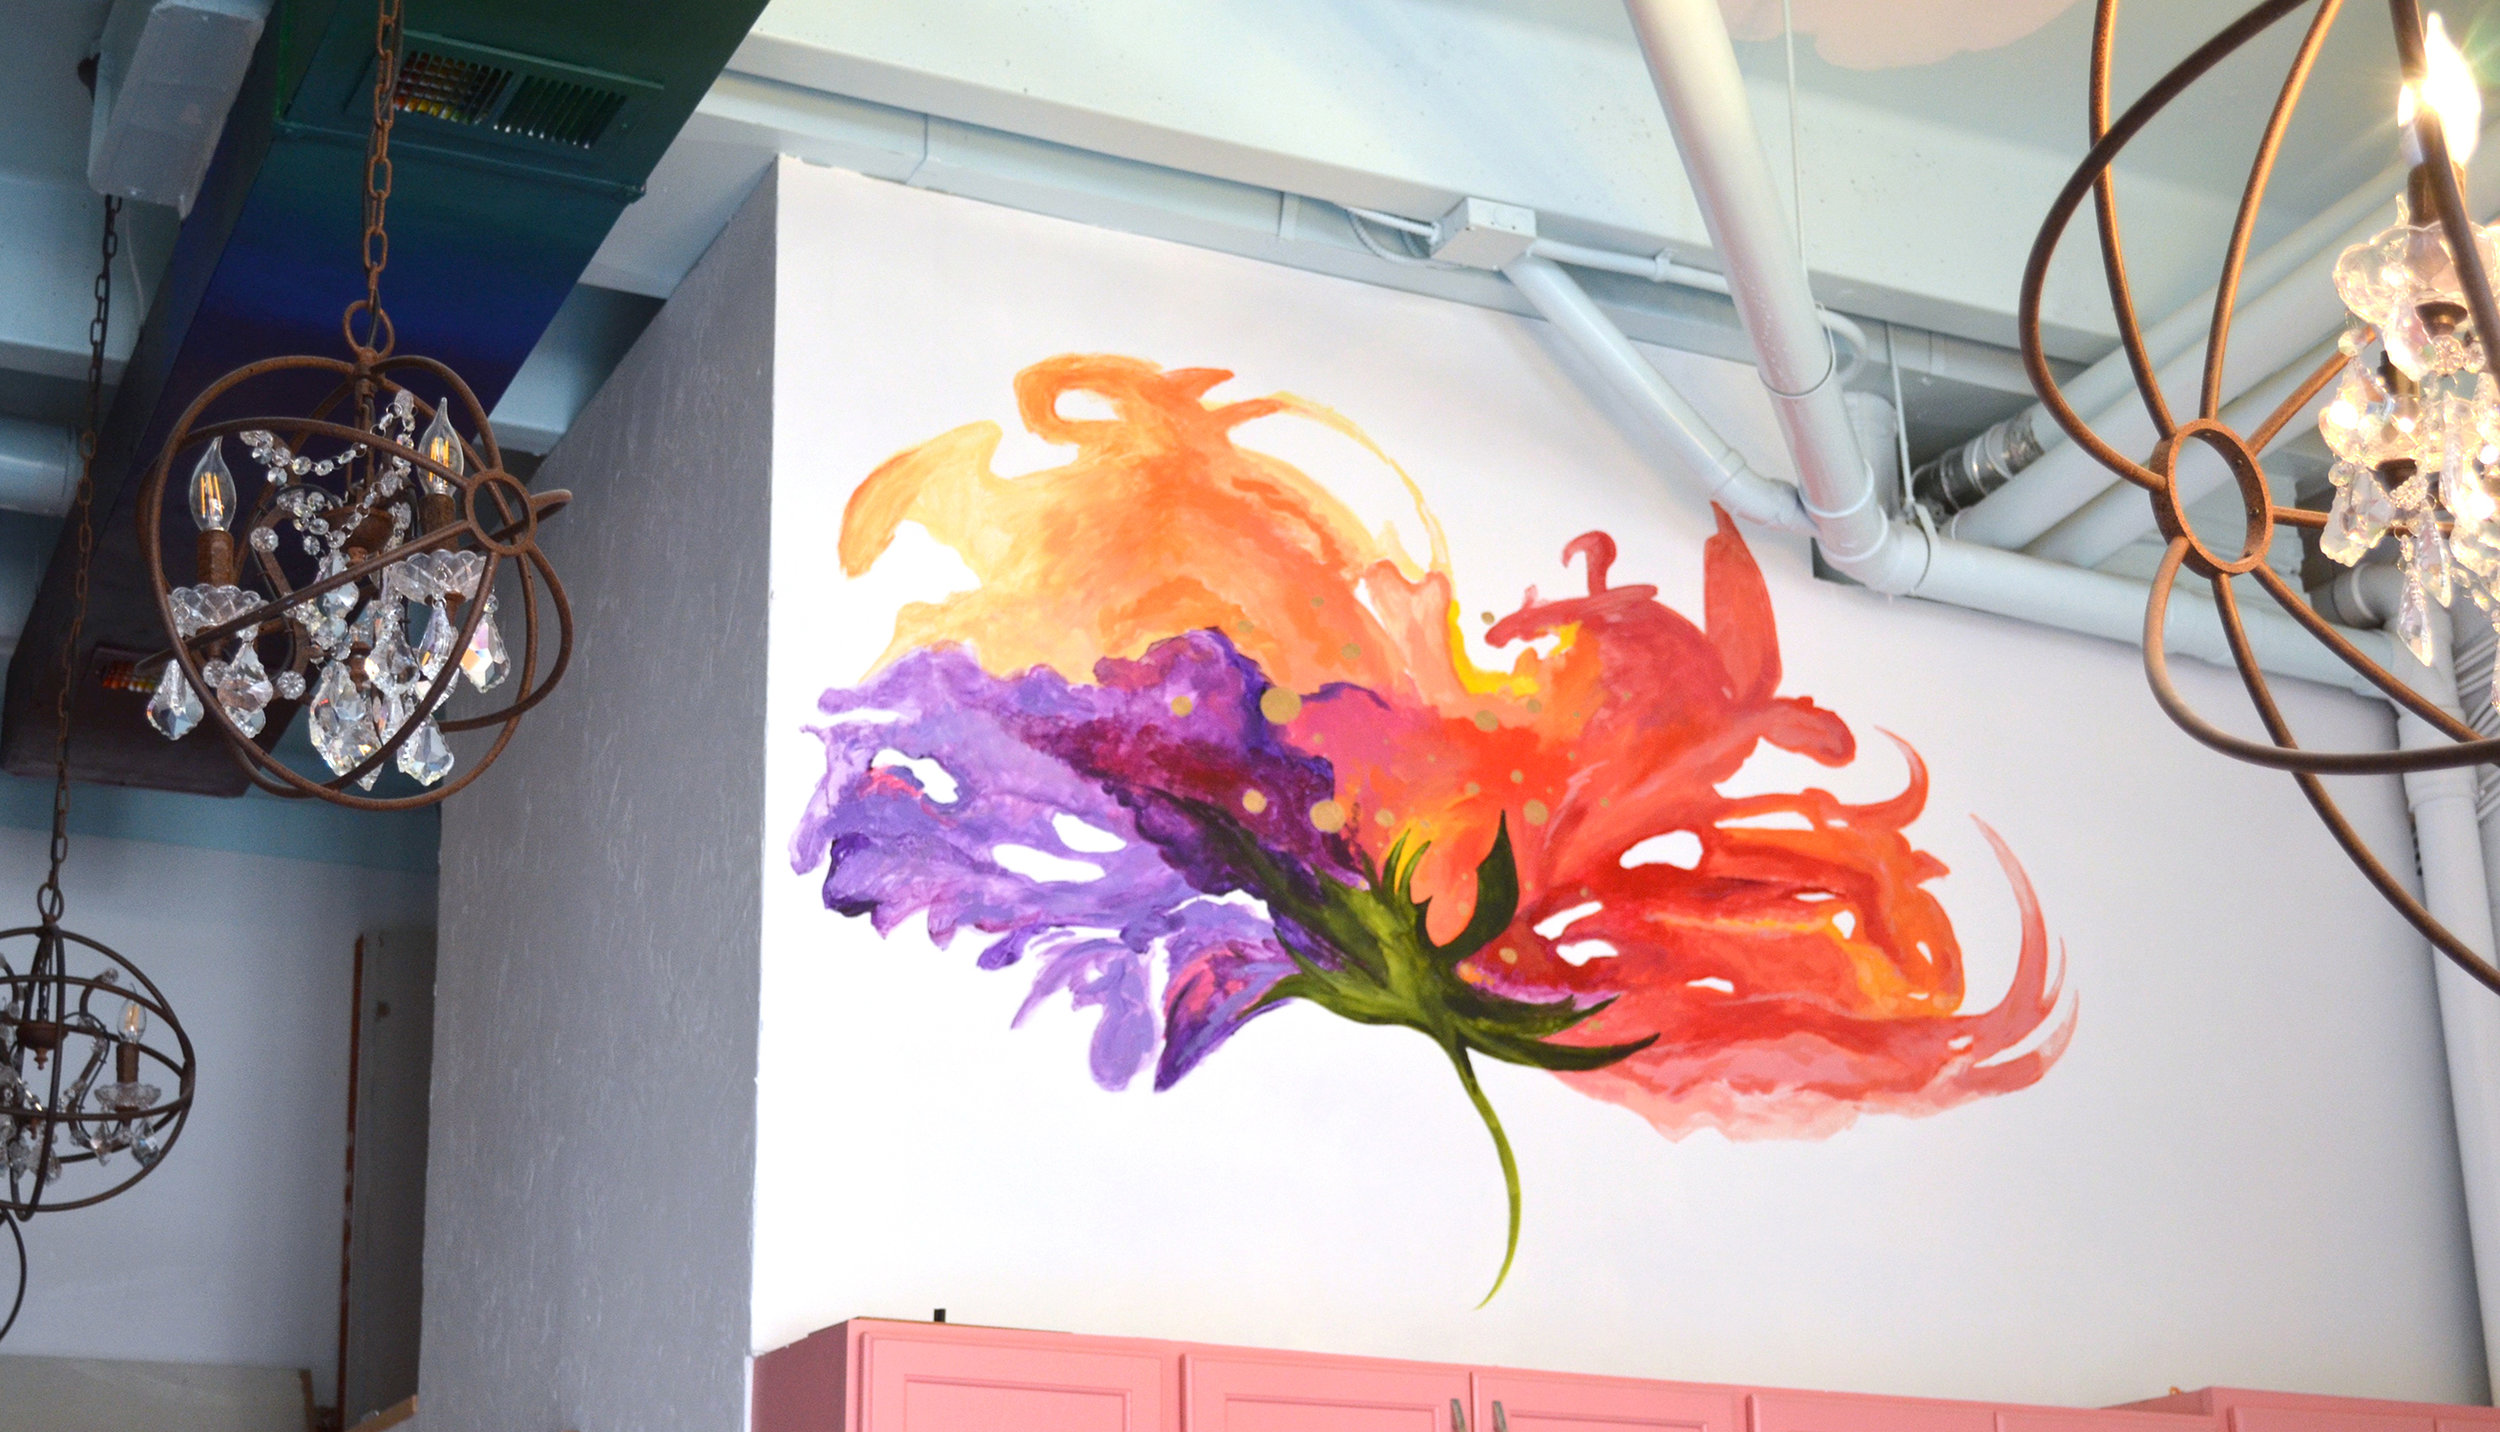 Mural created for Phia Labs in Denver, Colorado.